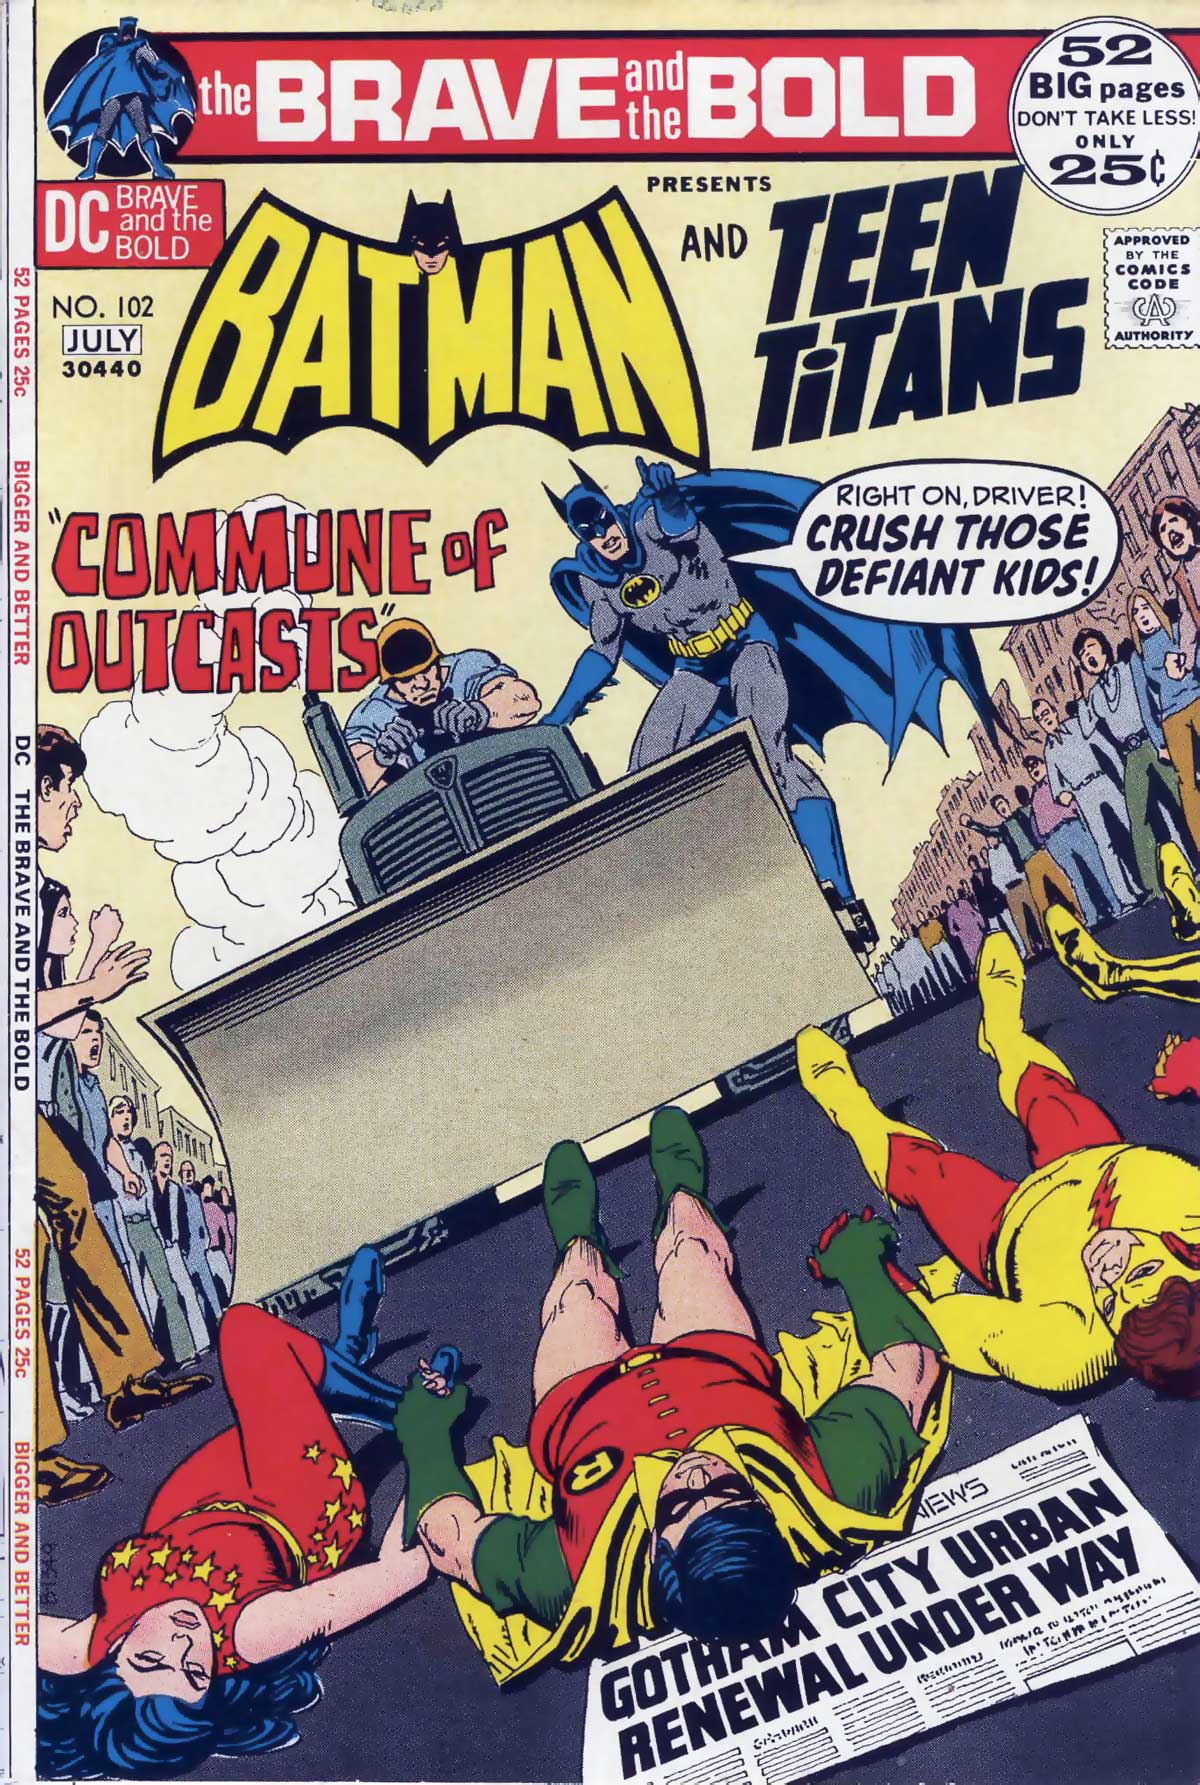 Brave and the Bold #102 with Batman and Teen Titans drawn by Nick Cardy